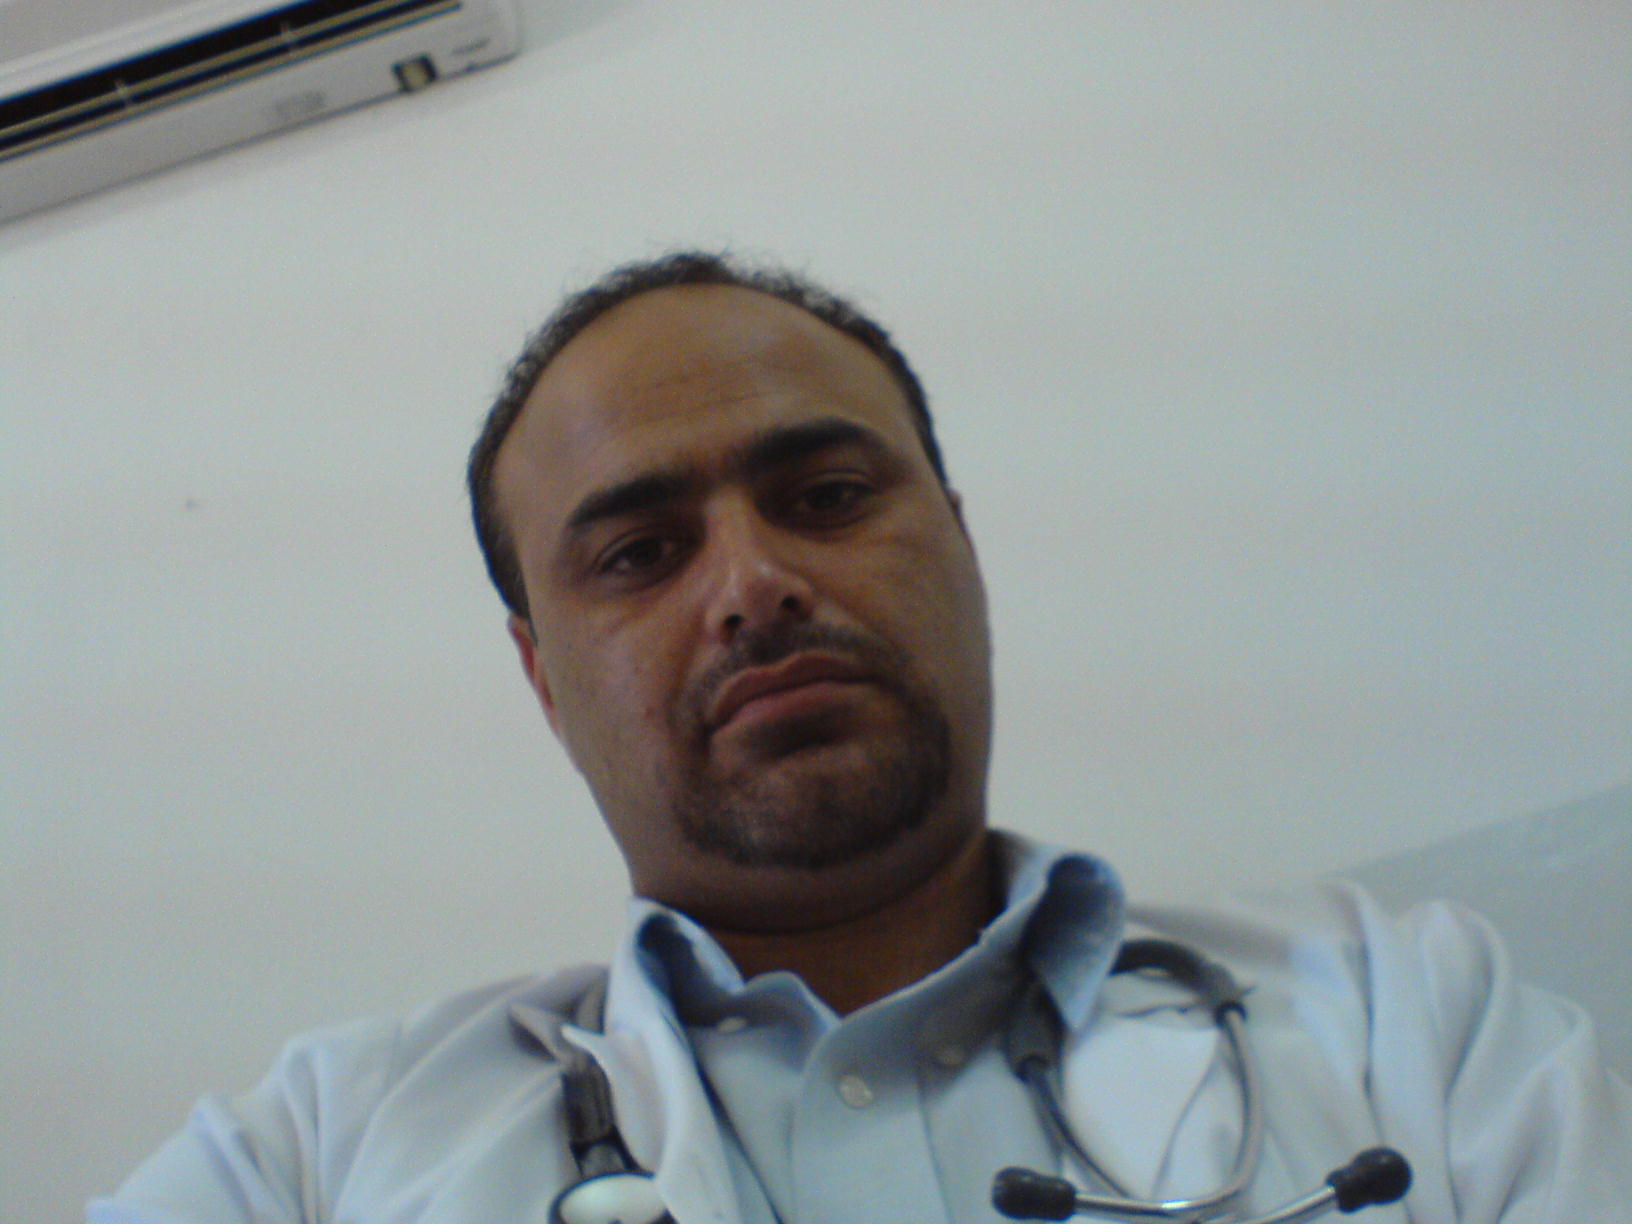 Dr. Arshad Hussain Shah